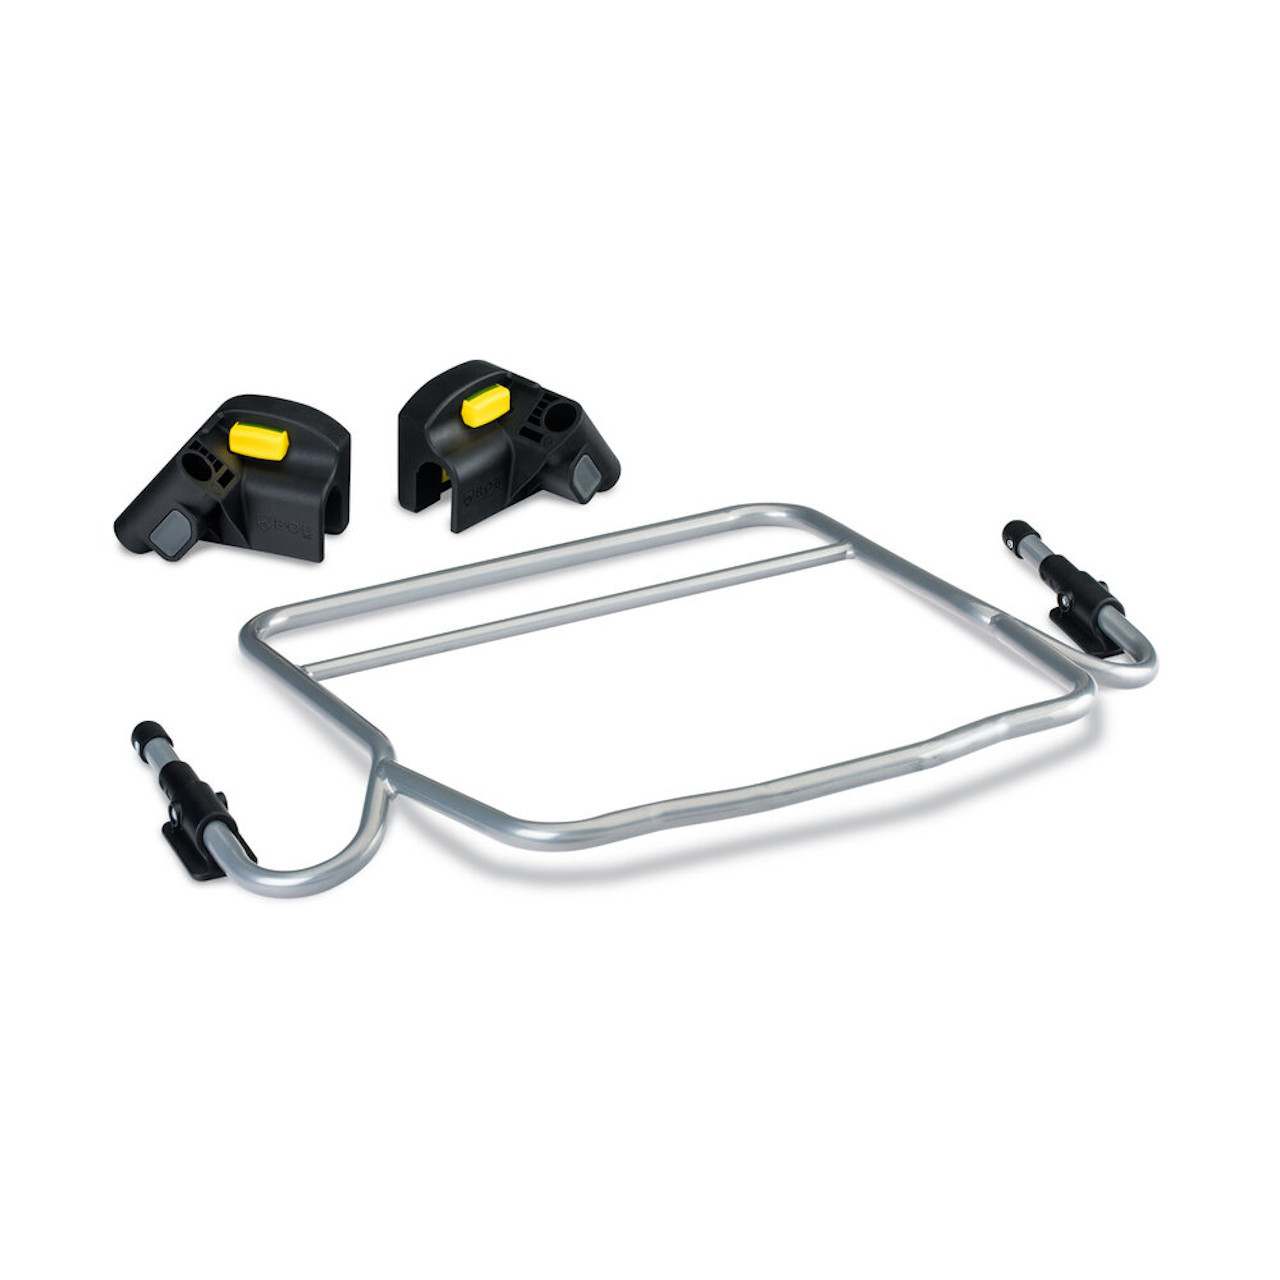 2020 Peg Perego Single Infant Car Seat Adapter - Perspective View